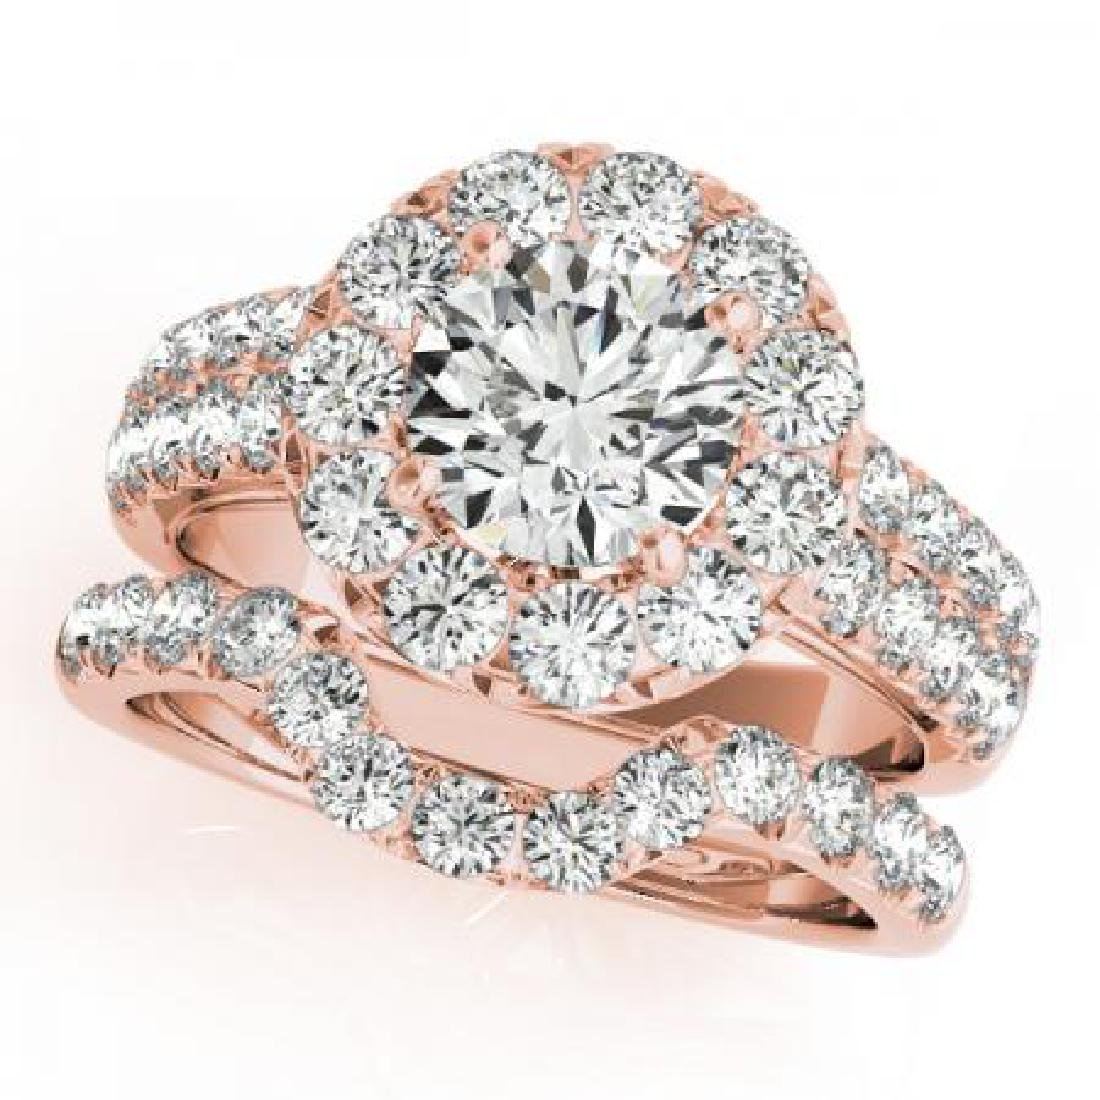 CERTIFIED 14KT ROSE GOLD 1.11 CT G-H/VS-SI1 DIAMOND HAL